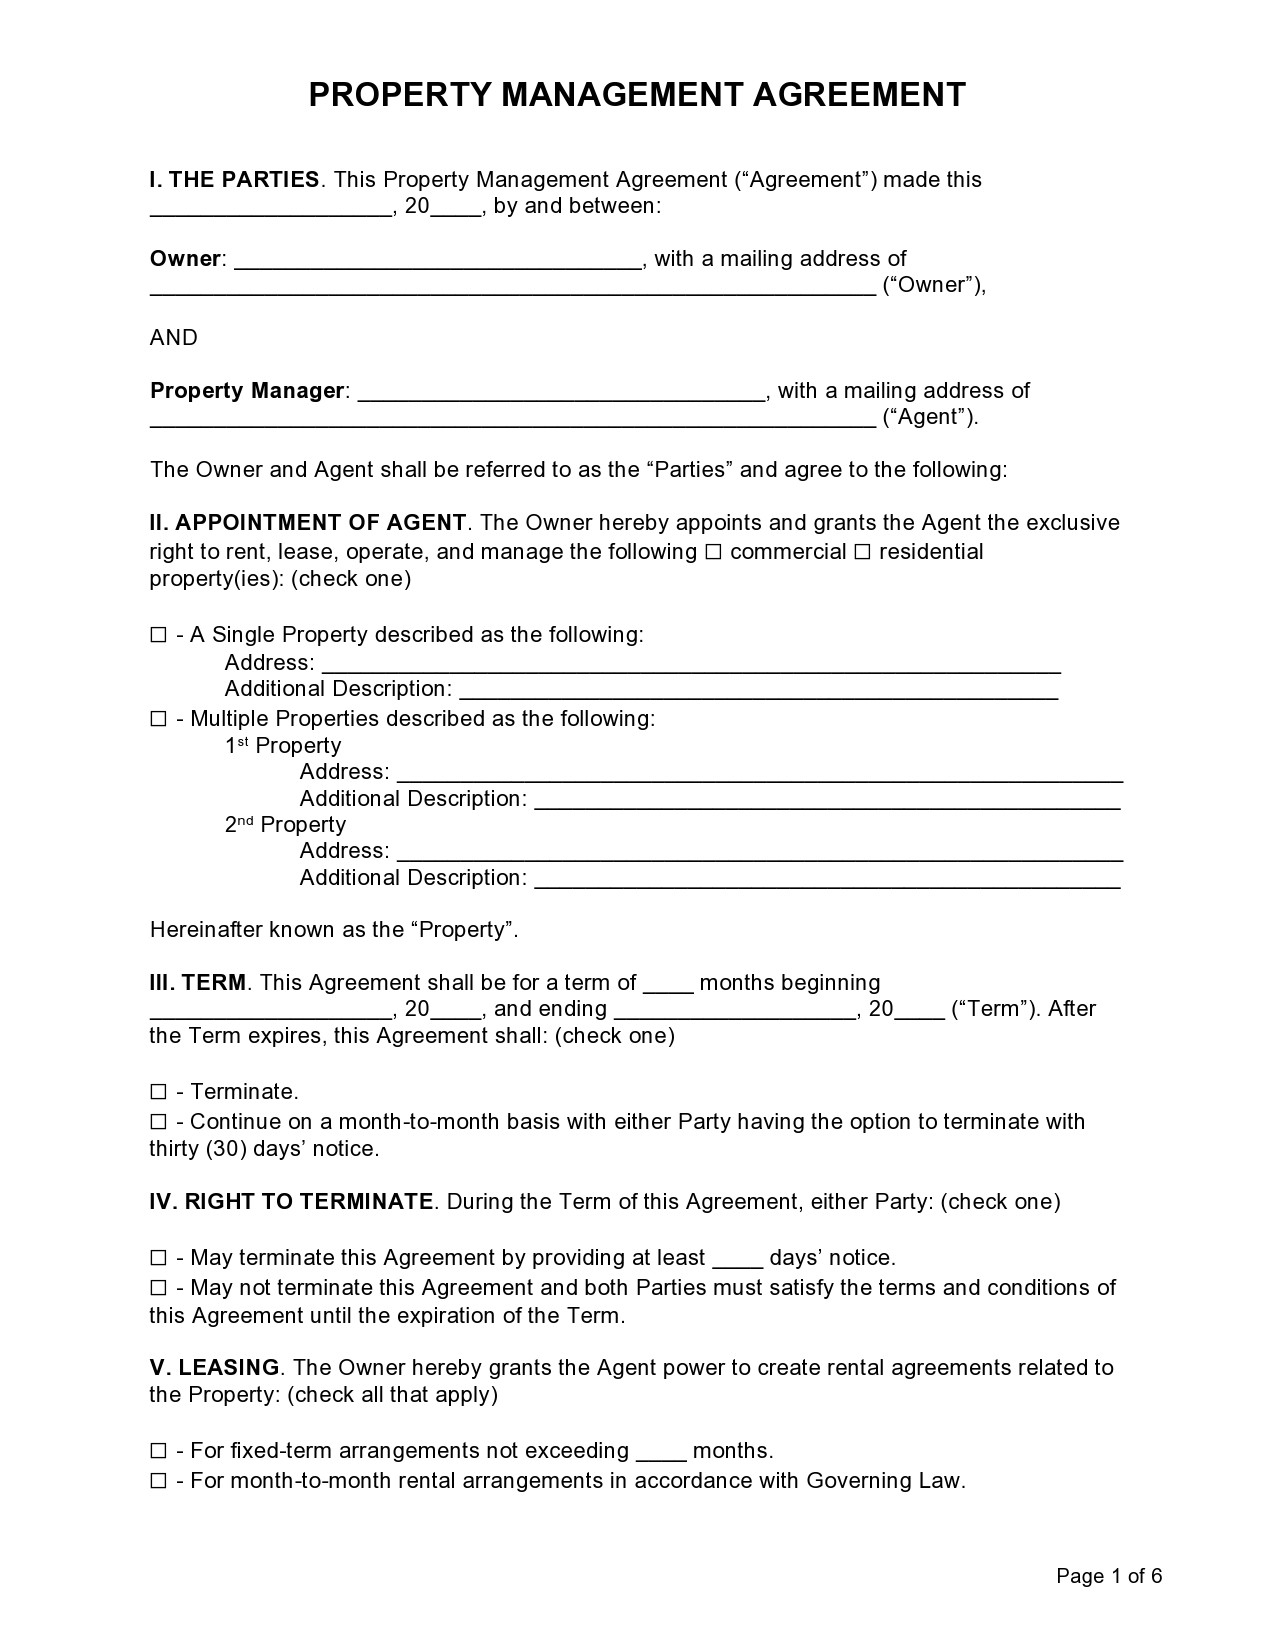 Free property management agreement 30